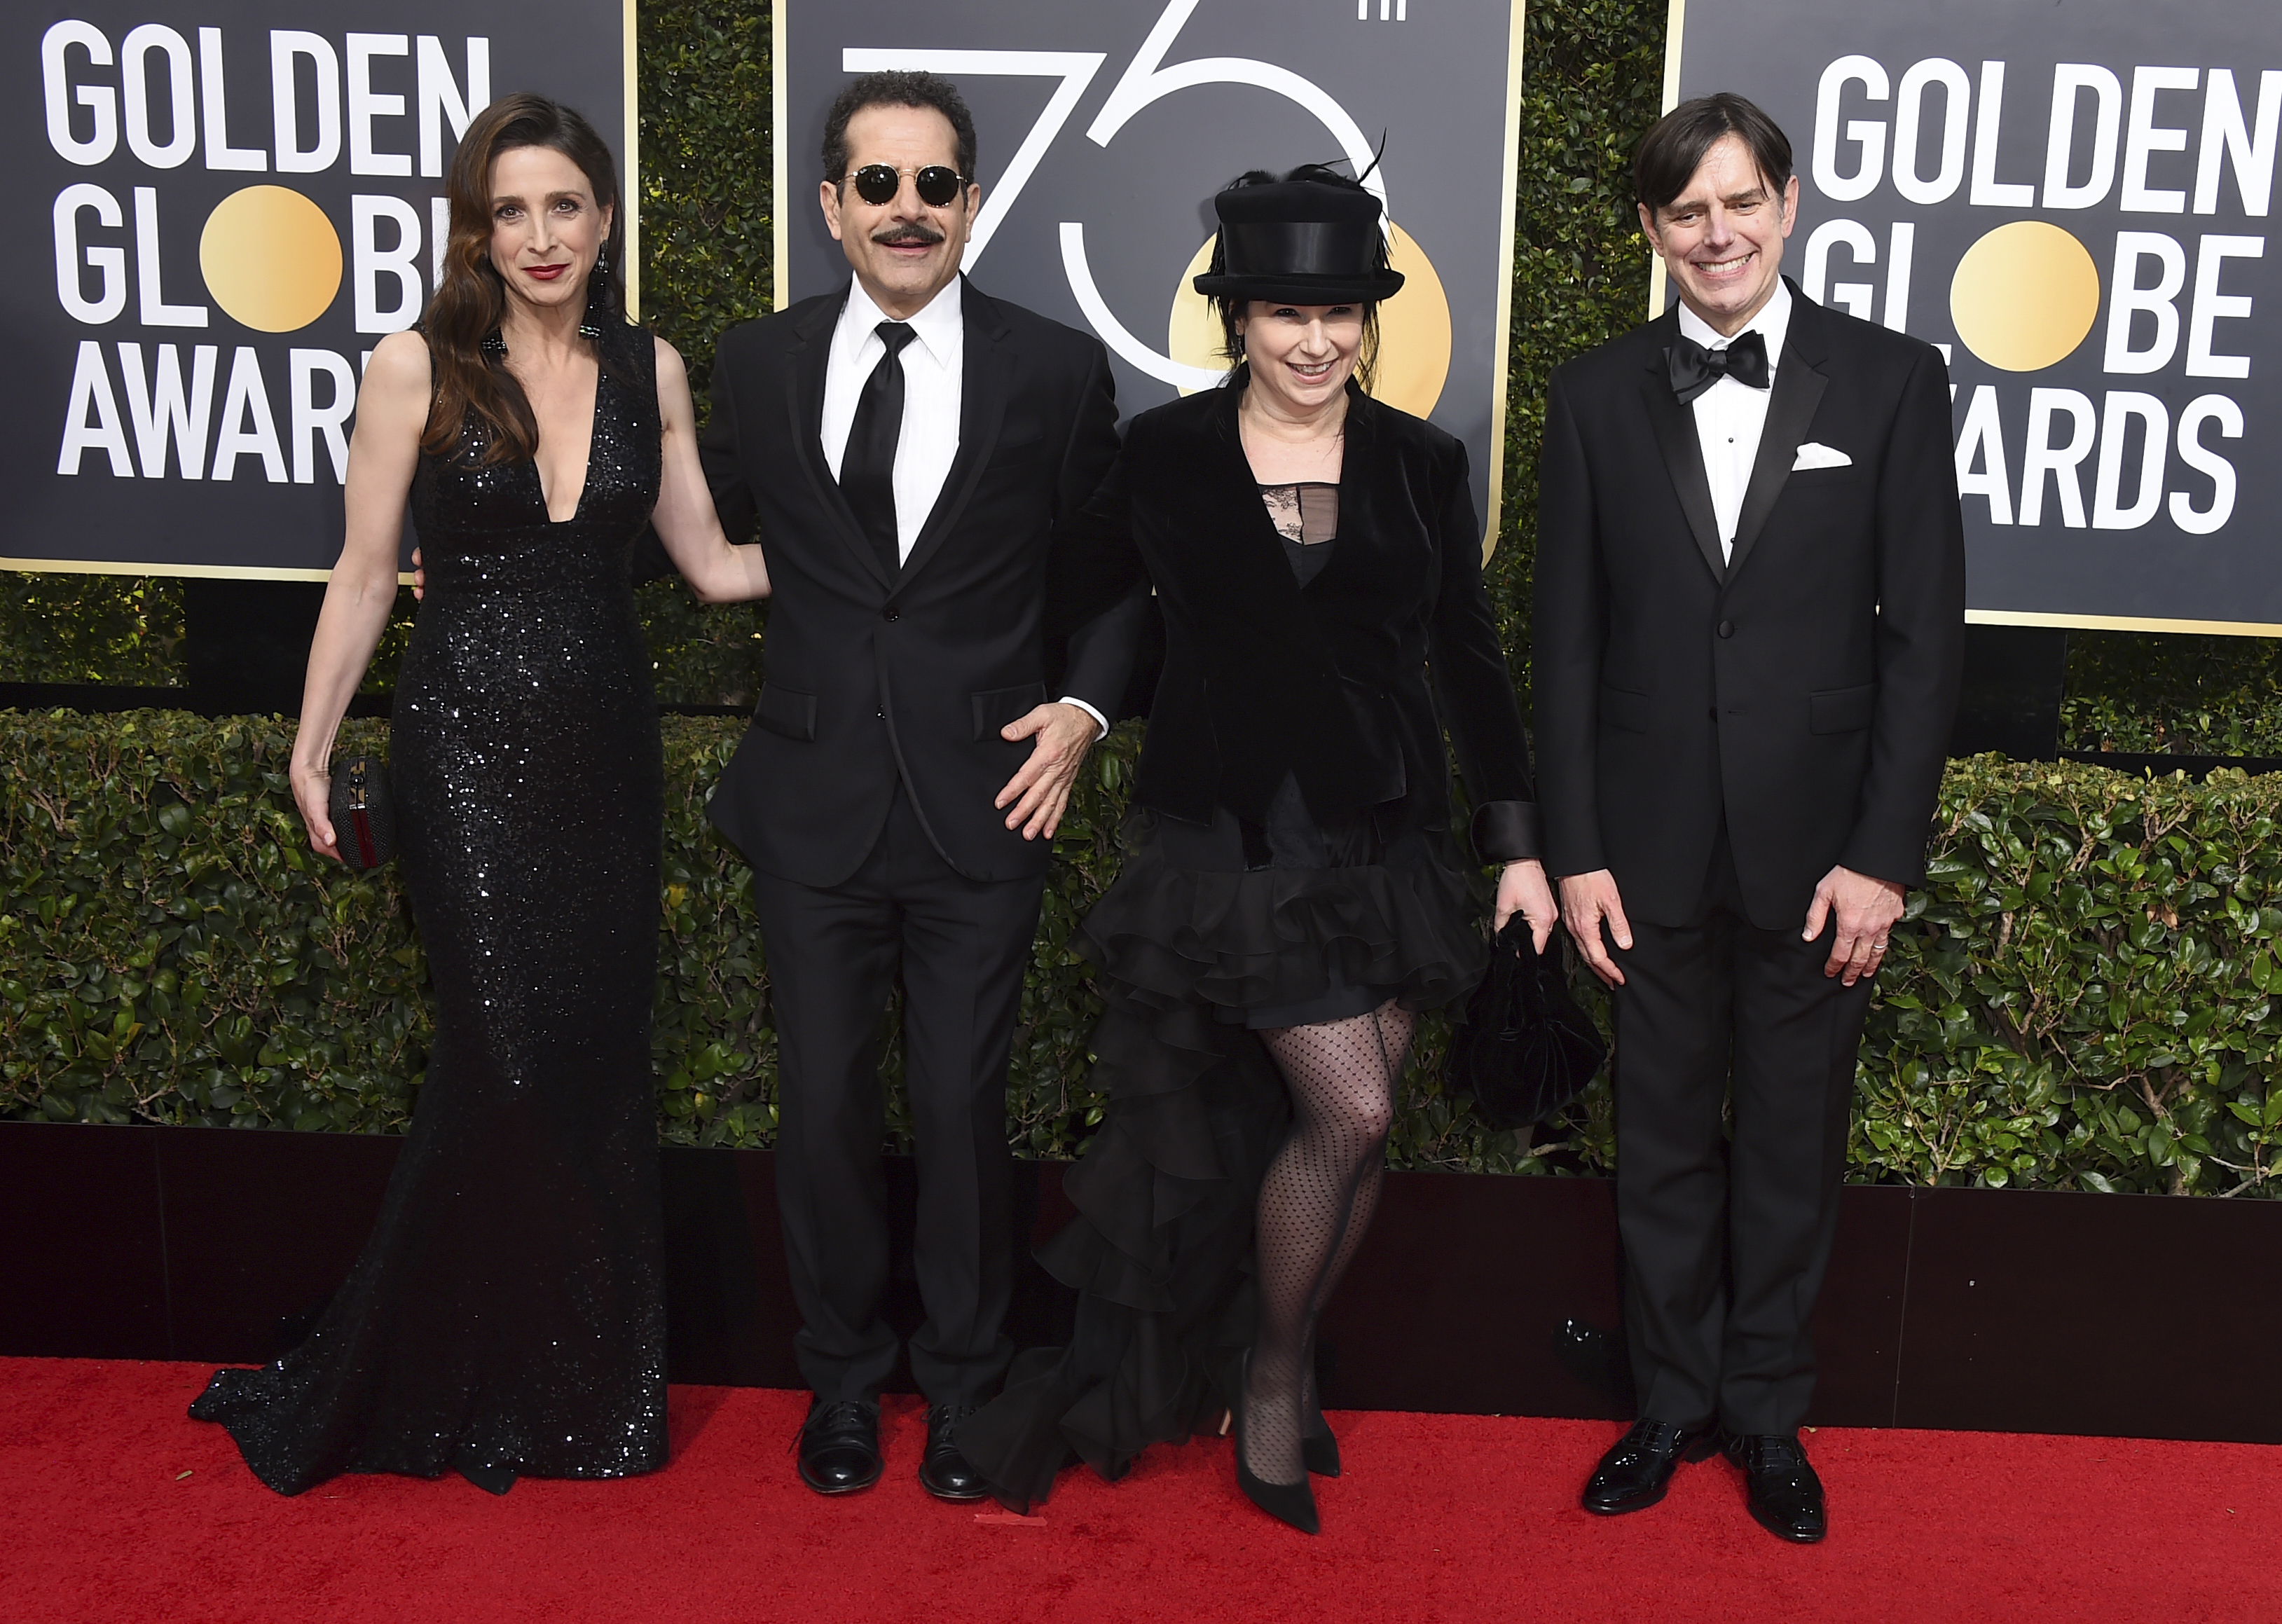 <div class='meta'><div class='origin-logo' data-origin='AP'></div><span class='caption-text' data-credit='Jordan Strauss/Invision/AP'>Marin Hinkle, from left, Tony Shalhoub, Amy Sherman-Palladino and Daniel Palladino arrive at the 75th annual Golden Globe Awards at the Beverly Hilton Hotel.</span></div>